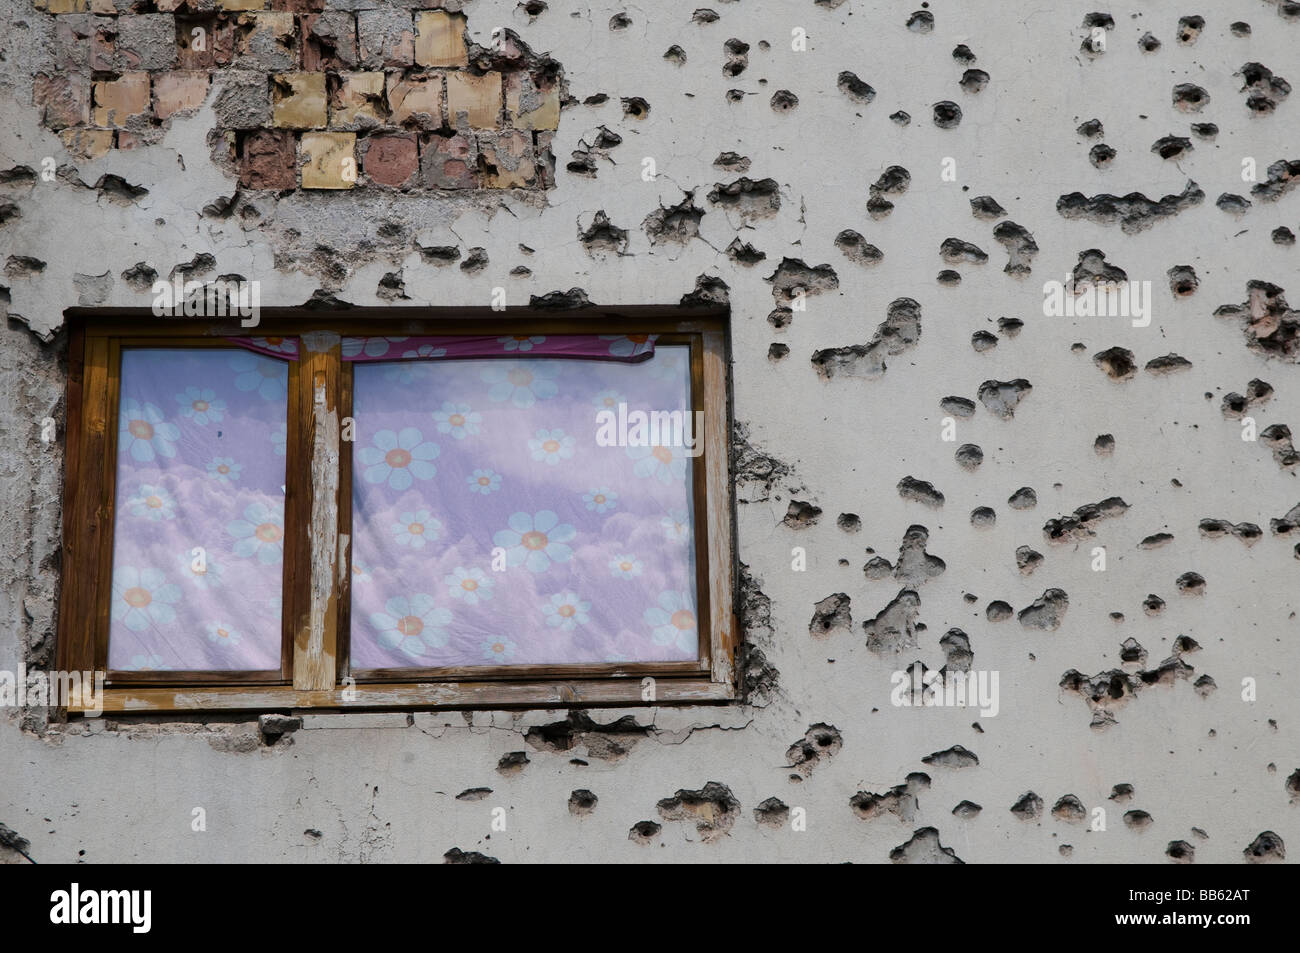 Facade of a house is riddled with bullet holes from the 1992-95 war in downtown Sarajevo, Bosnia Herzegovina - Stock Image